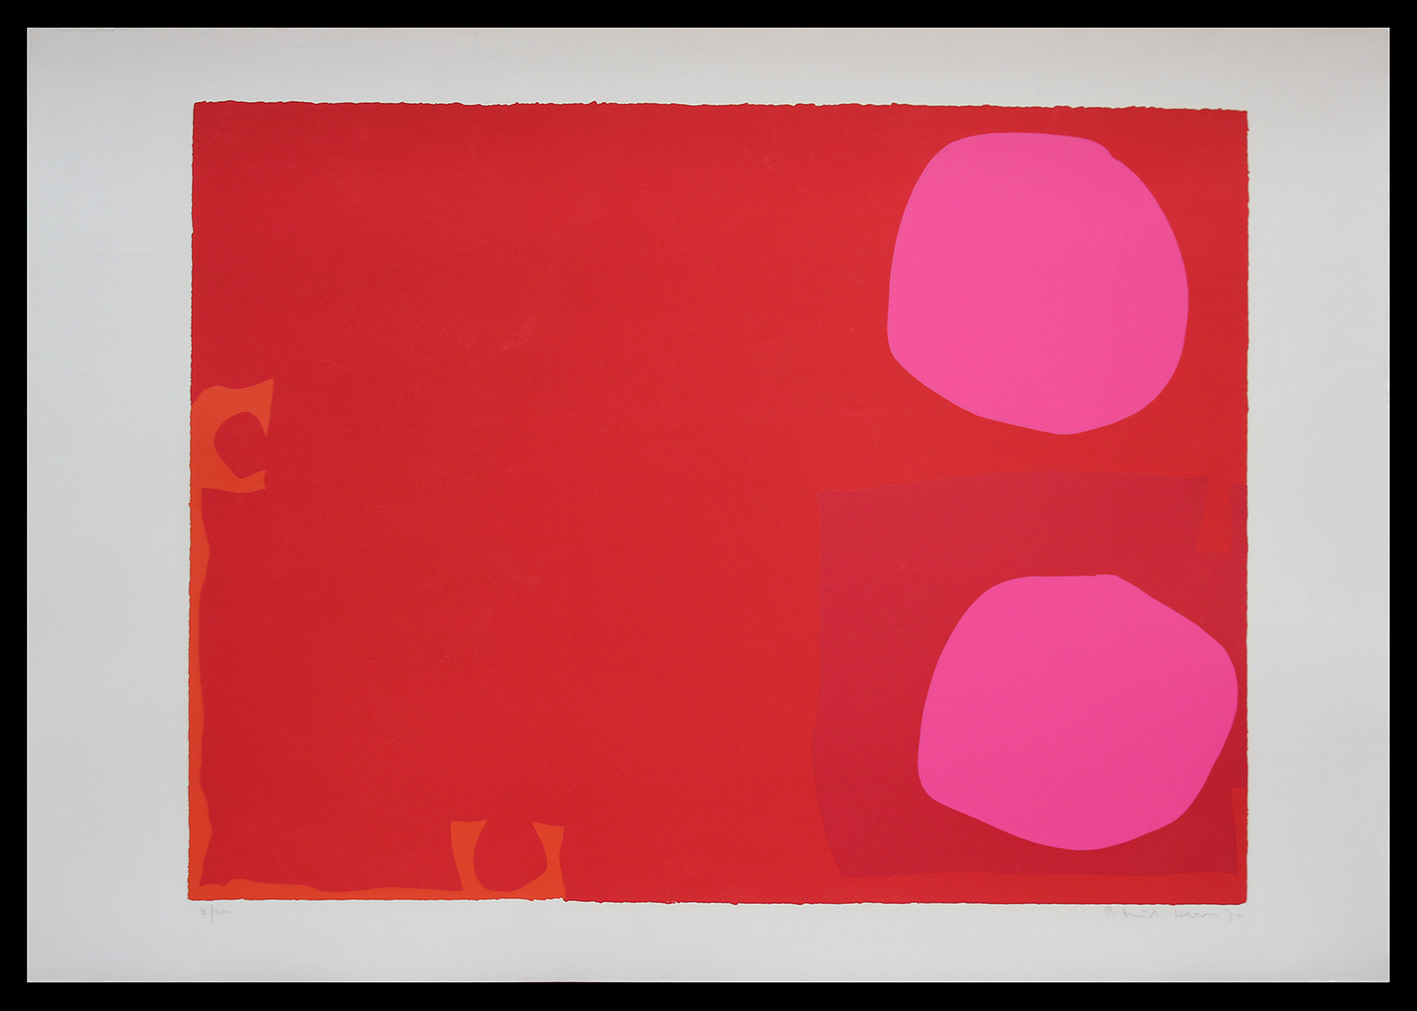 <span class=&#34;link fancybox-details-link&#34;><a href=&#34;/artists/93-patrick-heron-cbe/works/4047-patrick-heron-cbe-two-pink-discs-in-dark-reds-april-1970-1970/&#34;>View Detail Page</a></span><div class=&#34;artist&#34;><strong>Patrick Heron CBE</strong></div> 1920 – 1999 <div class=&#34;title&#34;><em>Two Pink Discs in Dark Reds: April 1970</em>, 1970</div> <div class=&#34;signed_and_dated&#34;>signed, dated and editioned in pencil</div> <div class=&#34;medium&#34;>silkscreen print in colours on wove paper, with full margins</div> <div class=&#34;dimensions&#34;>image: 60 x 78.5 cm (23 5/8 x 30 7/8 in.)<br /> sheet: 71 x 101 cm (28 x 39 3/4 in.)</div> <div class=&#34;edition_details&#34;>Edition 8 of 100</div><div class=&#34;copyright_line&#34;>© The Estate of Patrick Heron</div>